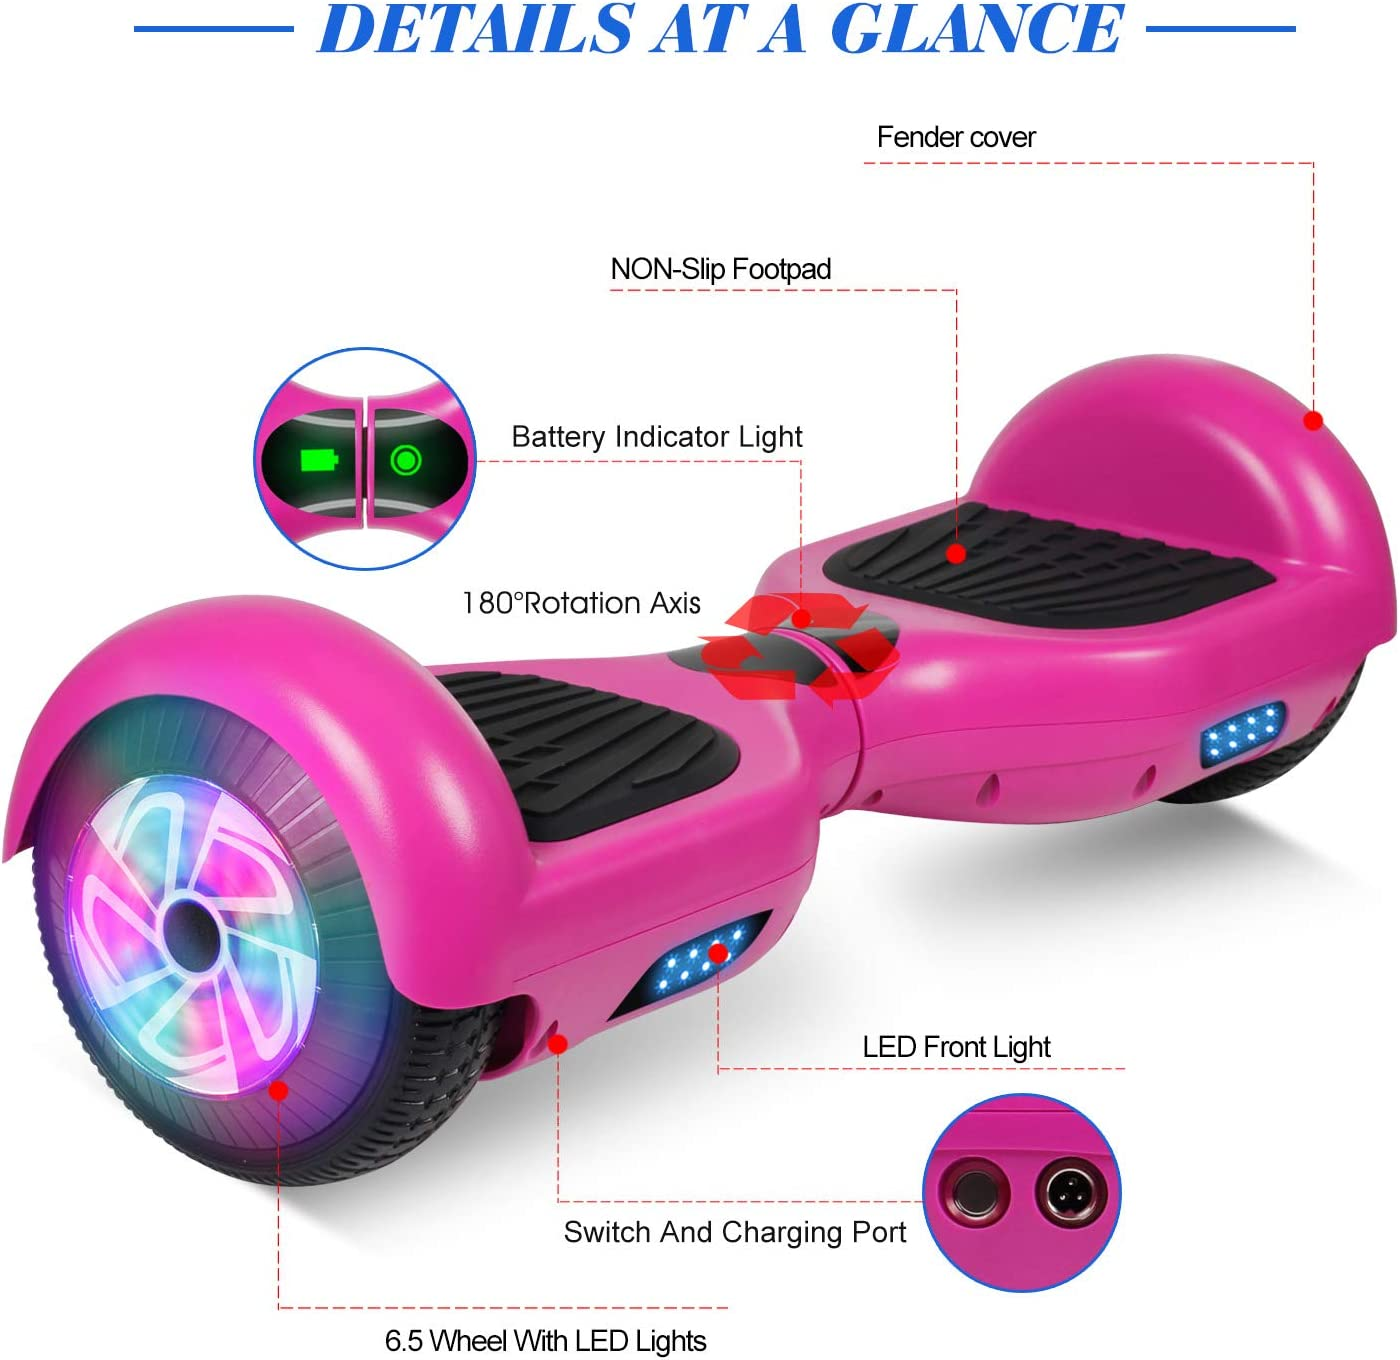 FLYING-ANT Hoverboard, 6.5 Inch Self Balancing Hoverboards F-Purple - 1